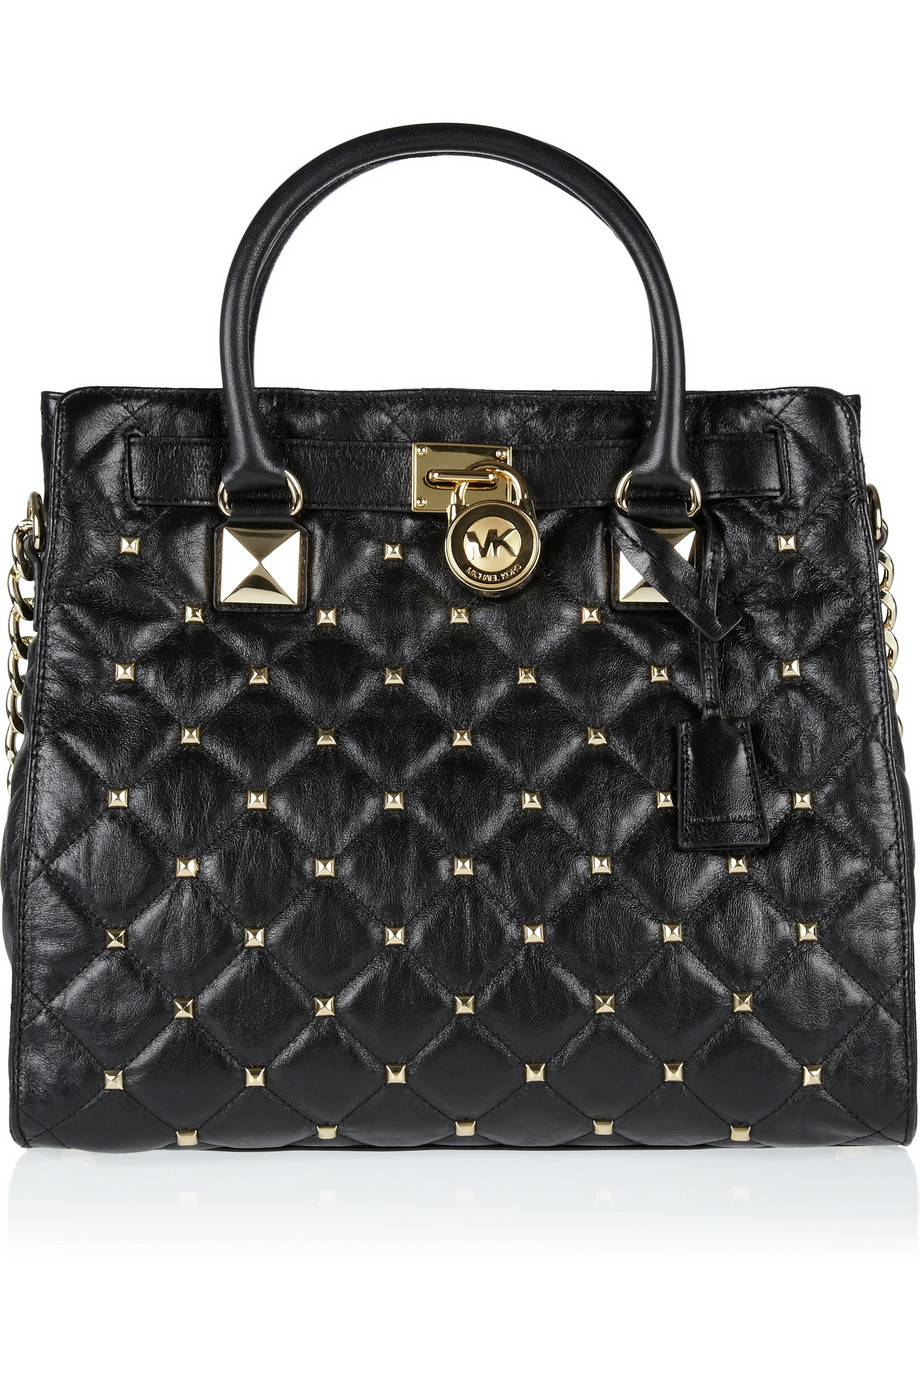 69e97dad5fc2 Gallery. Previously sold at: NET-A-PORTER · Women's Michael Kors Quilted Bag